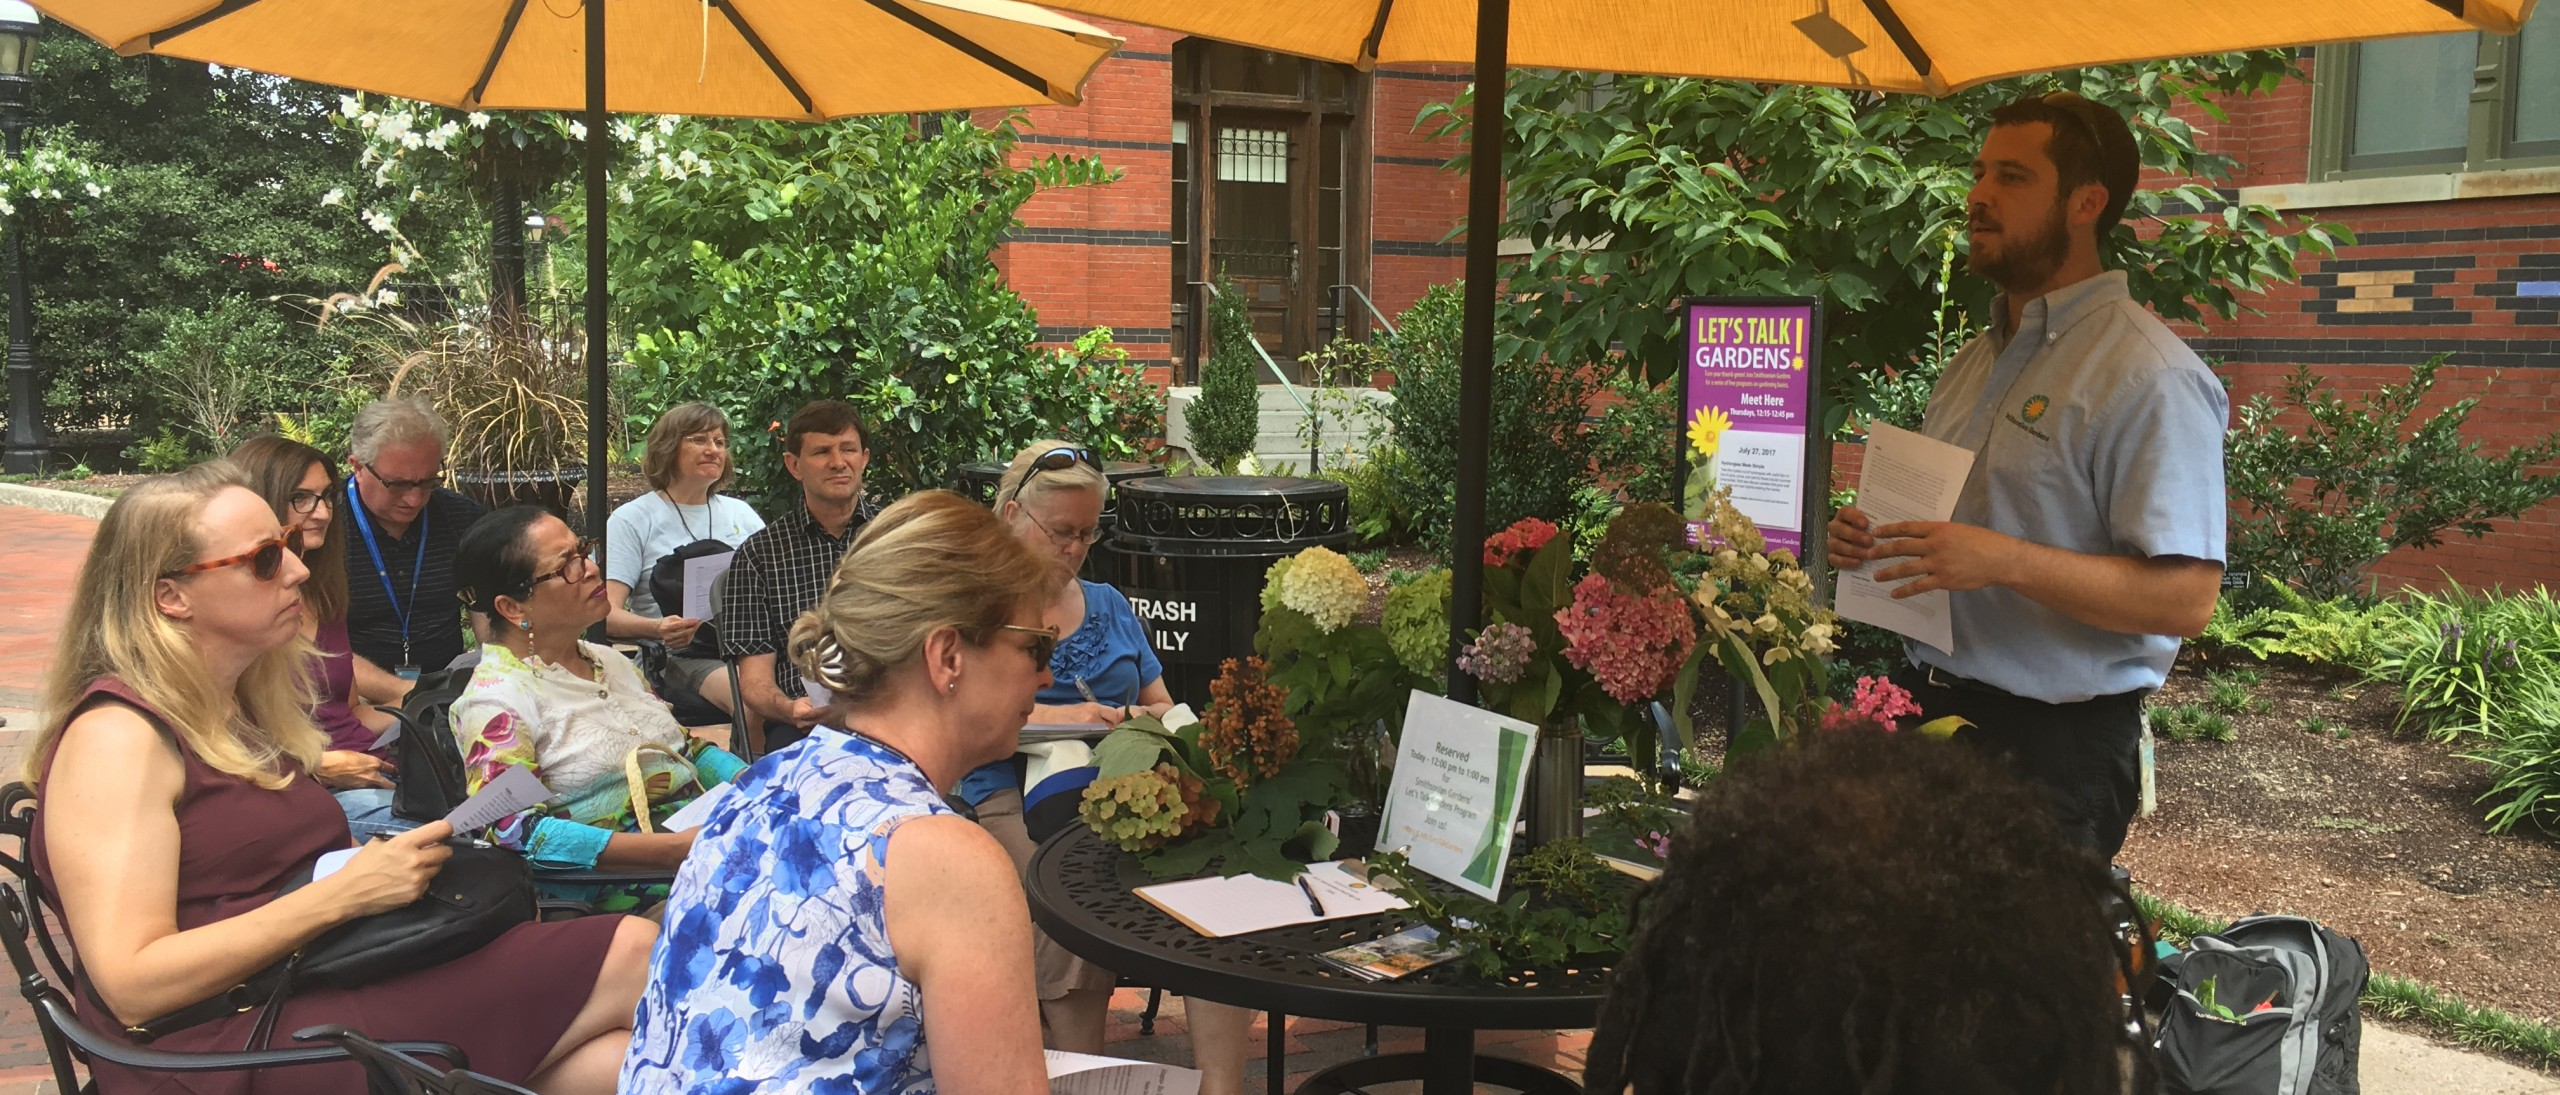 Horticulturist teaching seated attendees about hydrangea care under yellow shade umbrellas